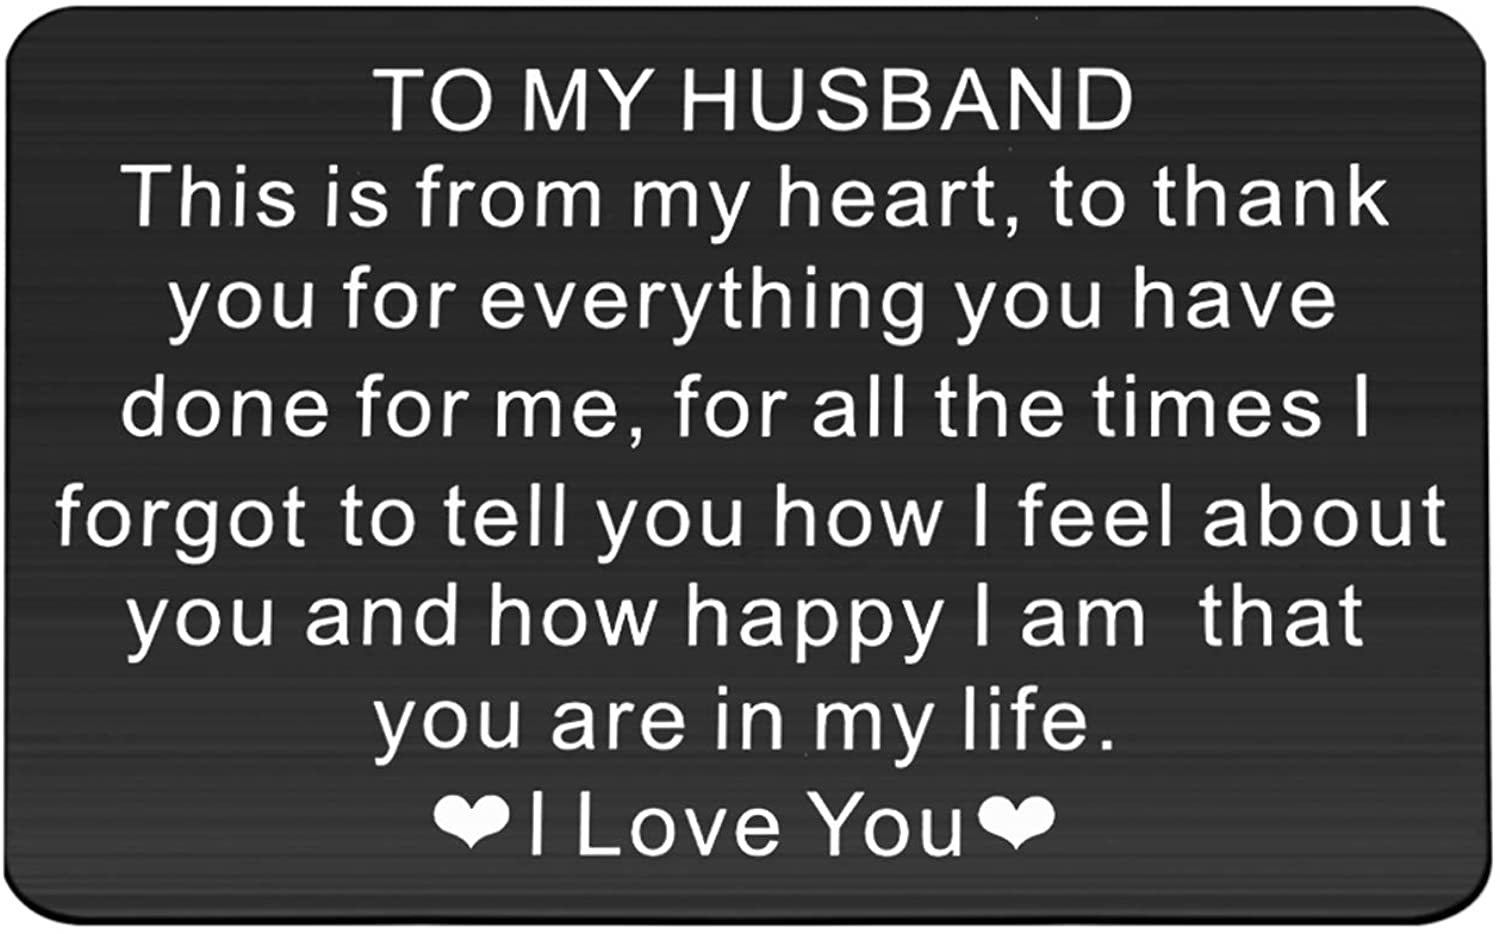 FUSTMW to My Husband Engraved Wallet Insert Husband from Wife for Husband Wallet Love Note Insert